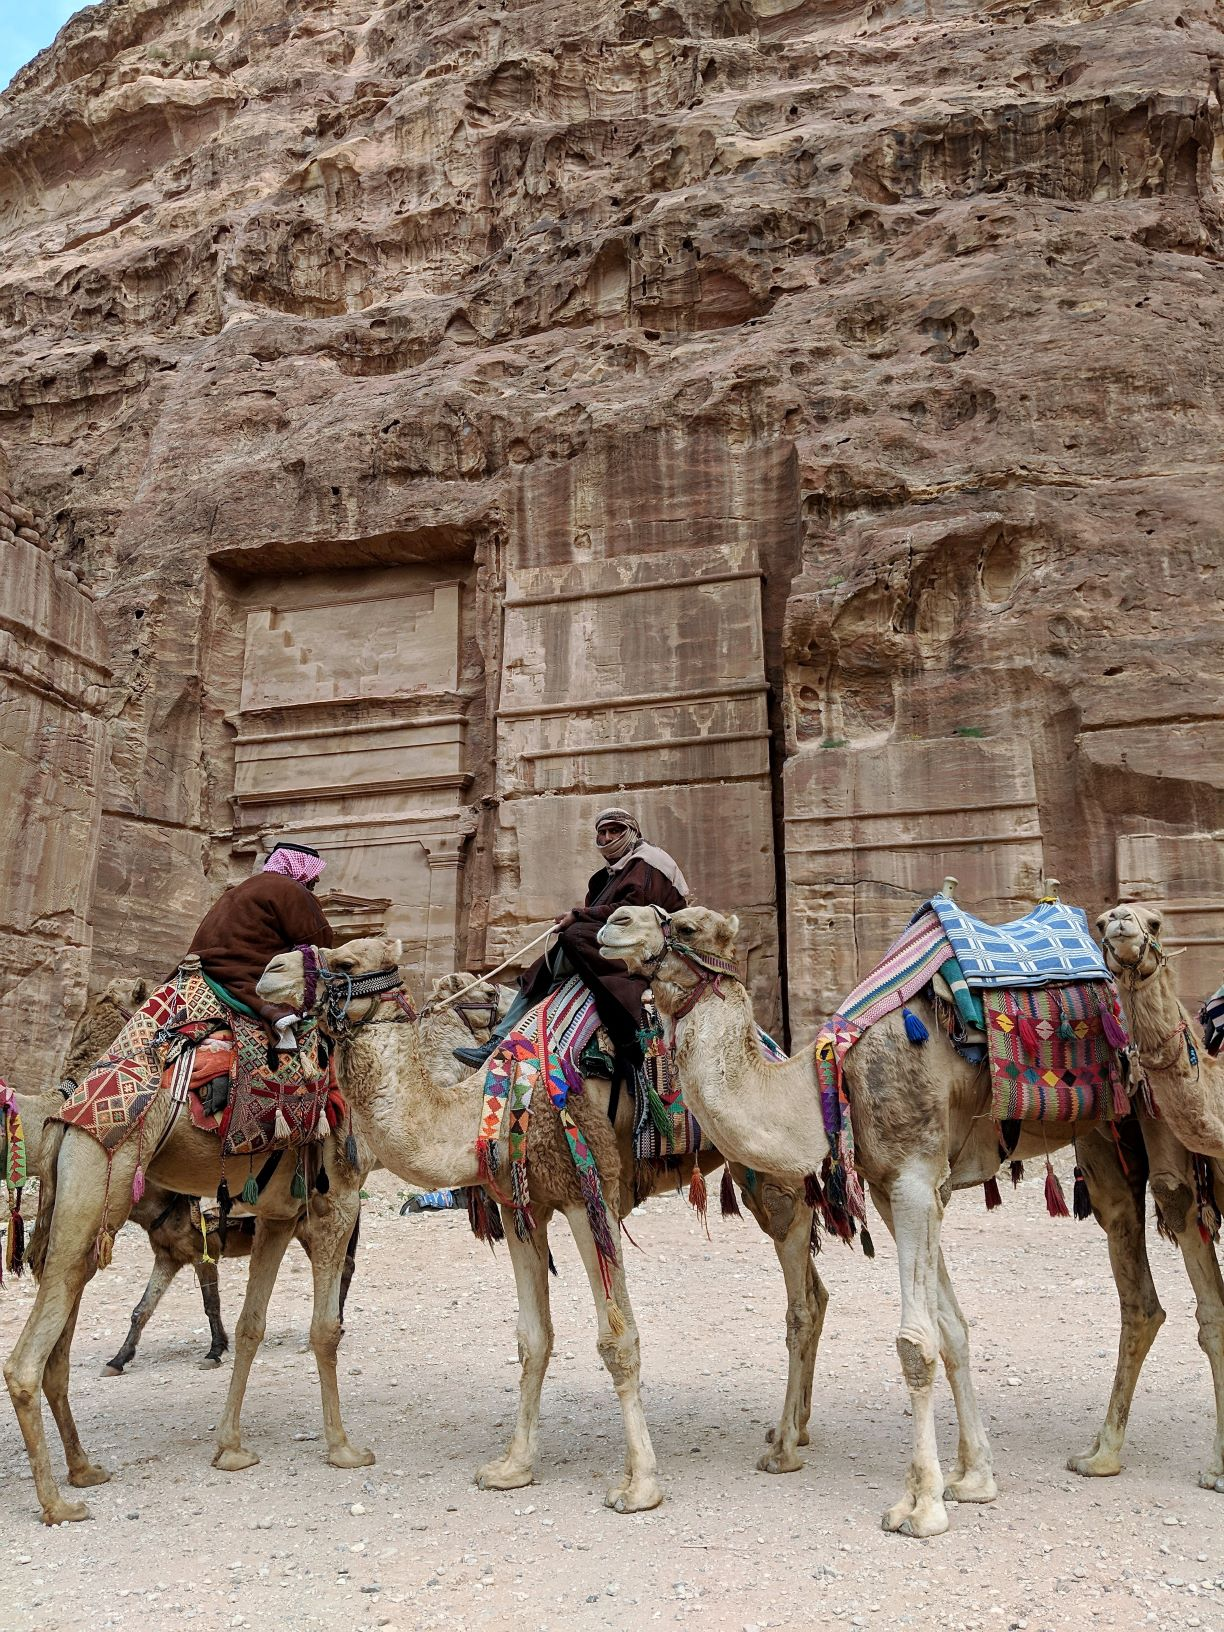 Some of the many camels and Bedouin of Petra.